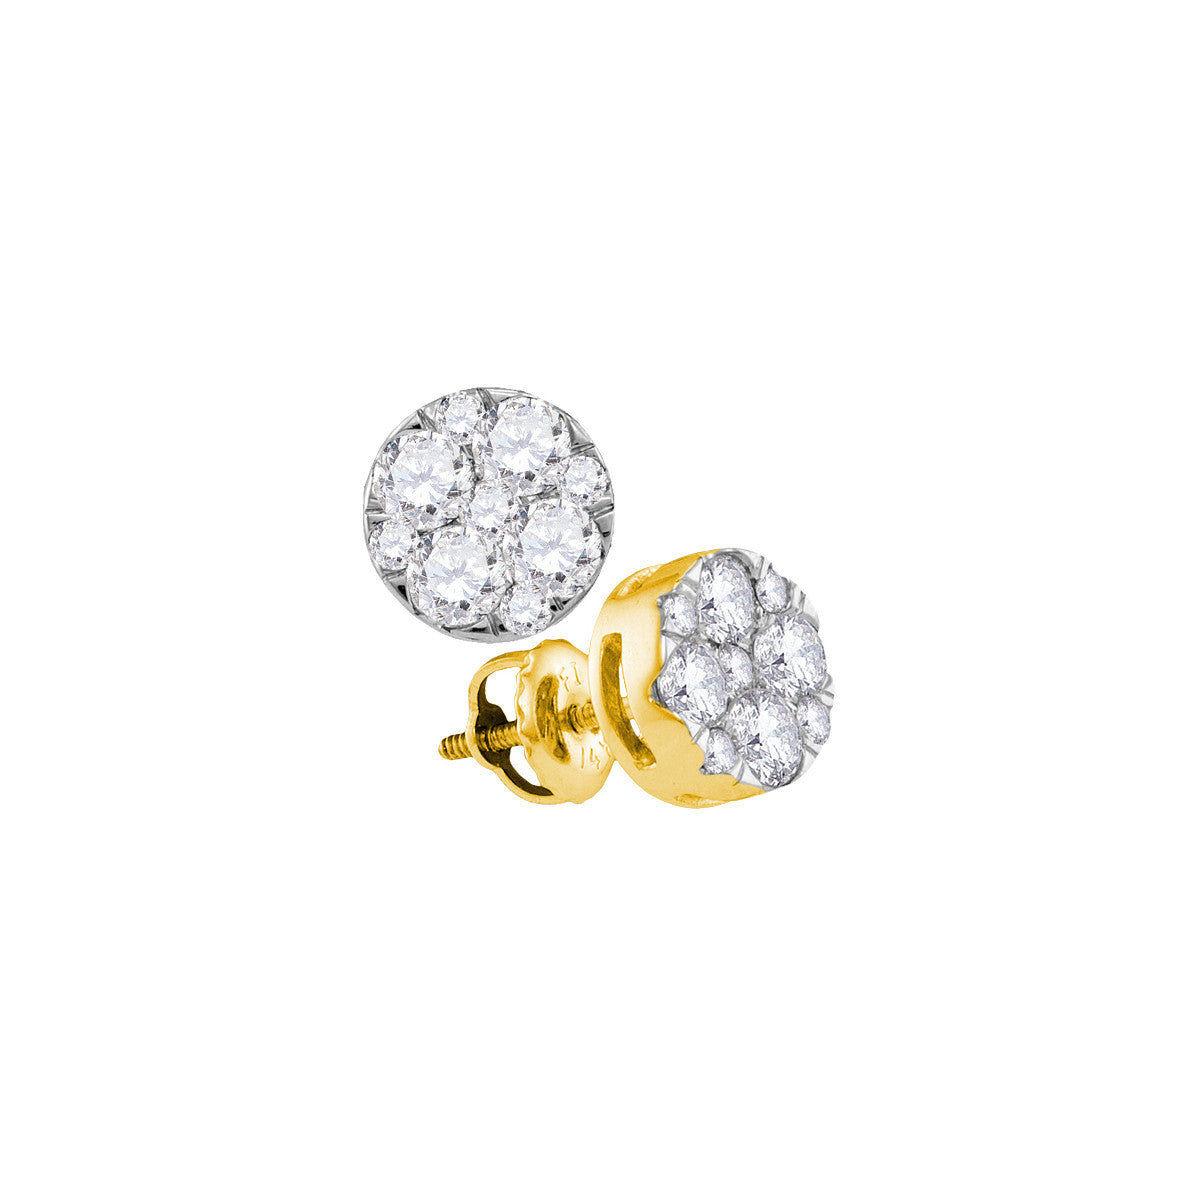 14kt Yellow Gold Womens Round Diamond Cluster Earrings 1.00 Cttw 107408 - shirin-diamonds